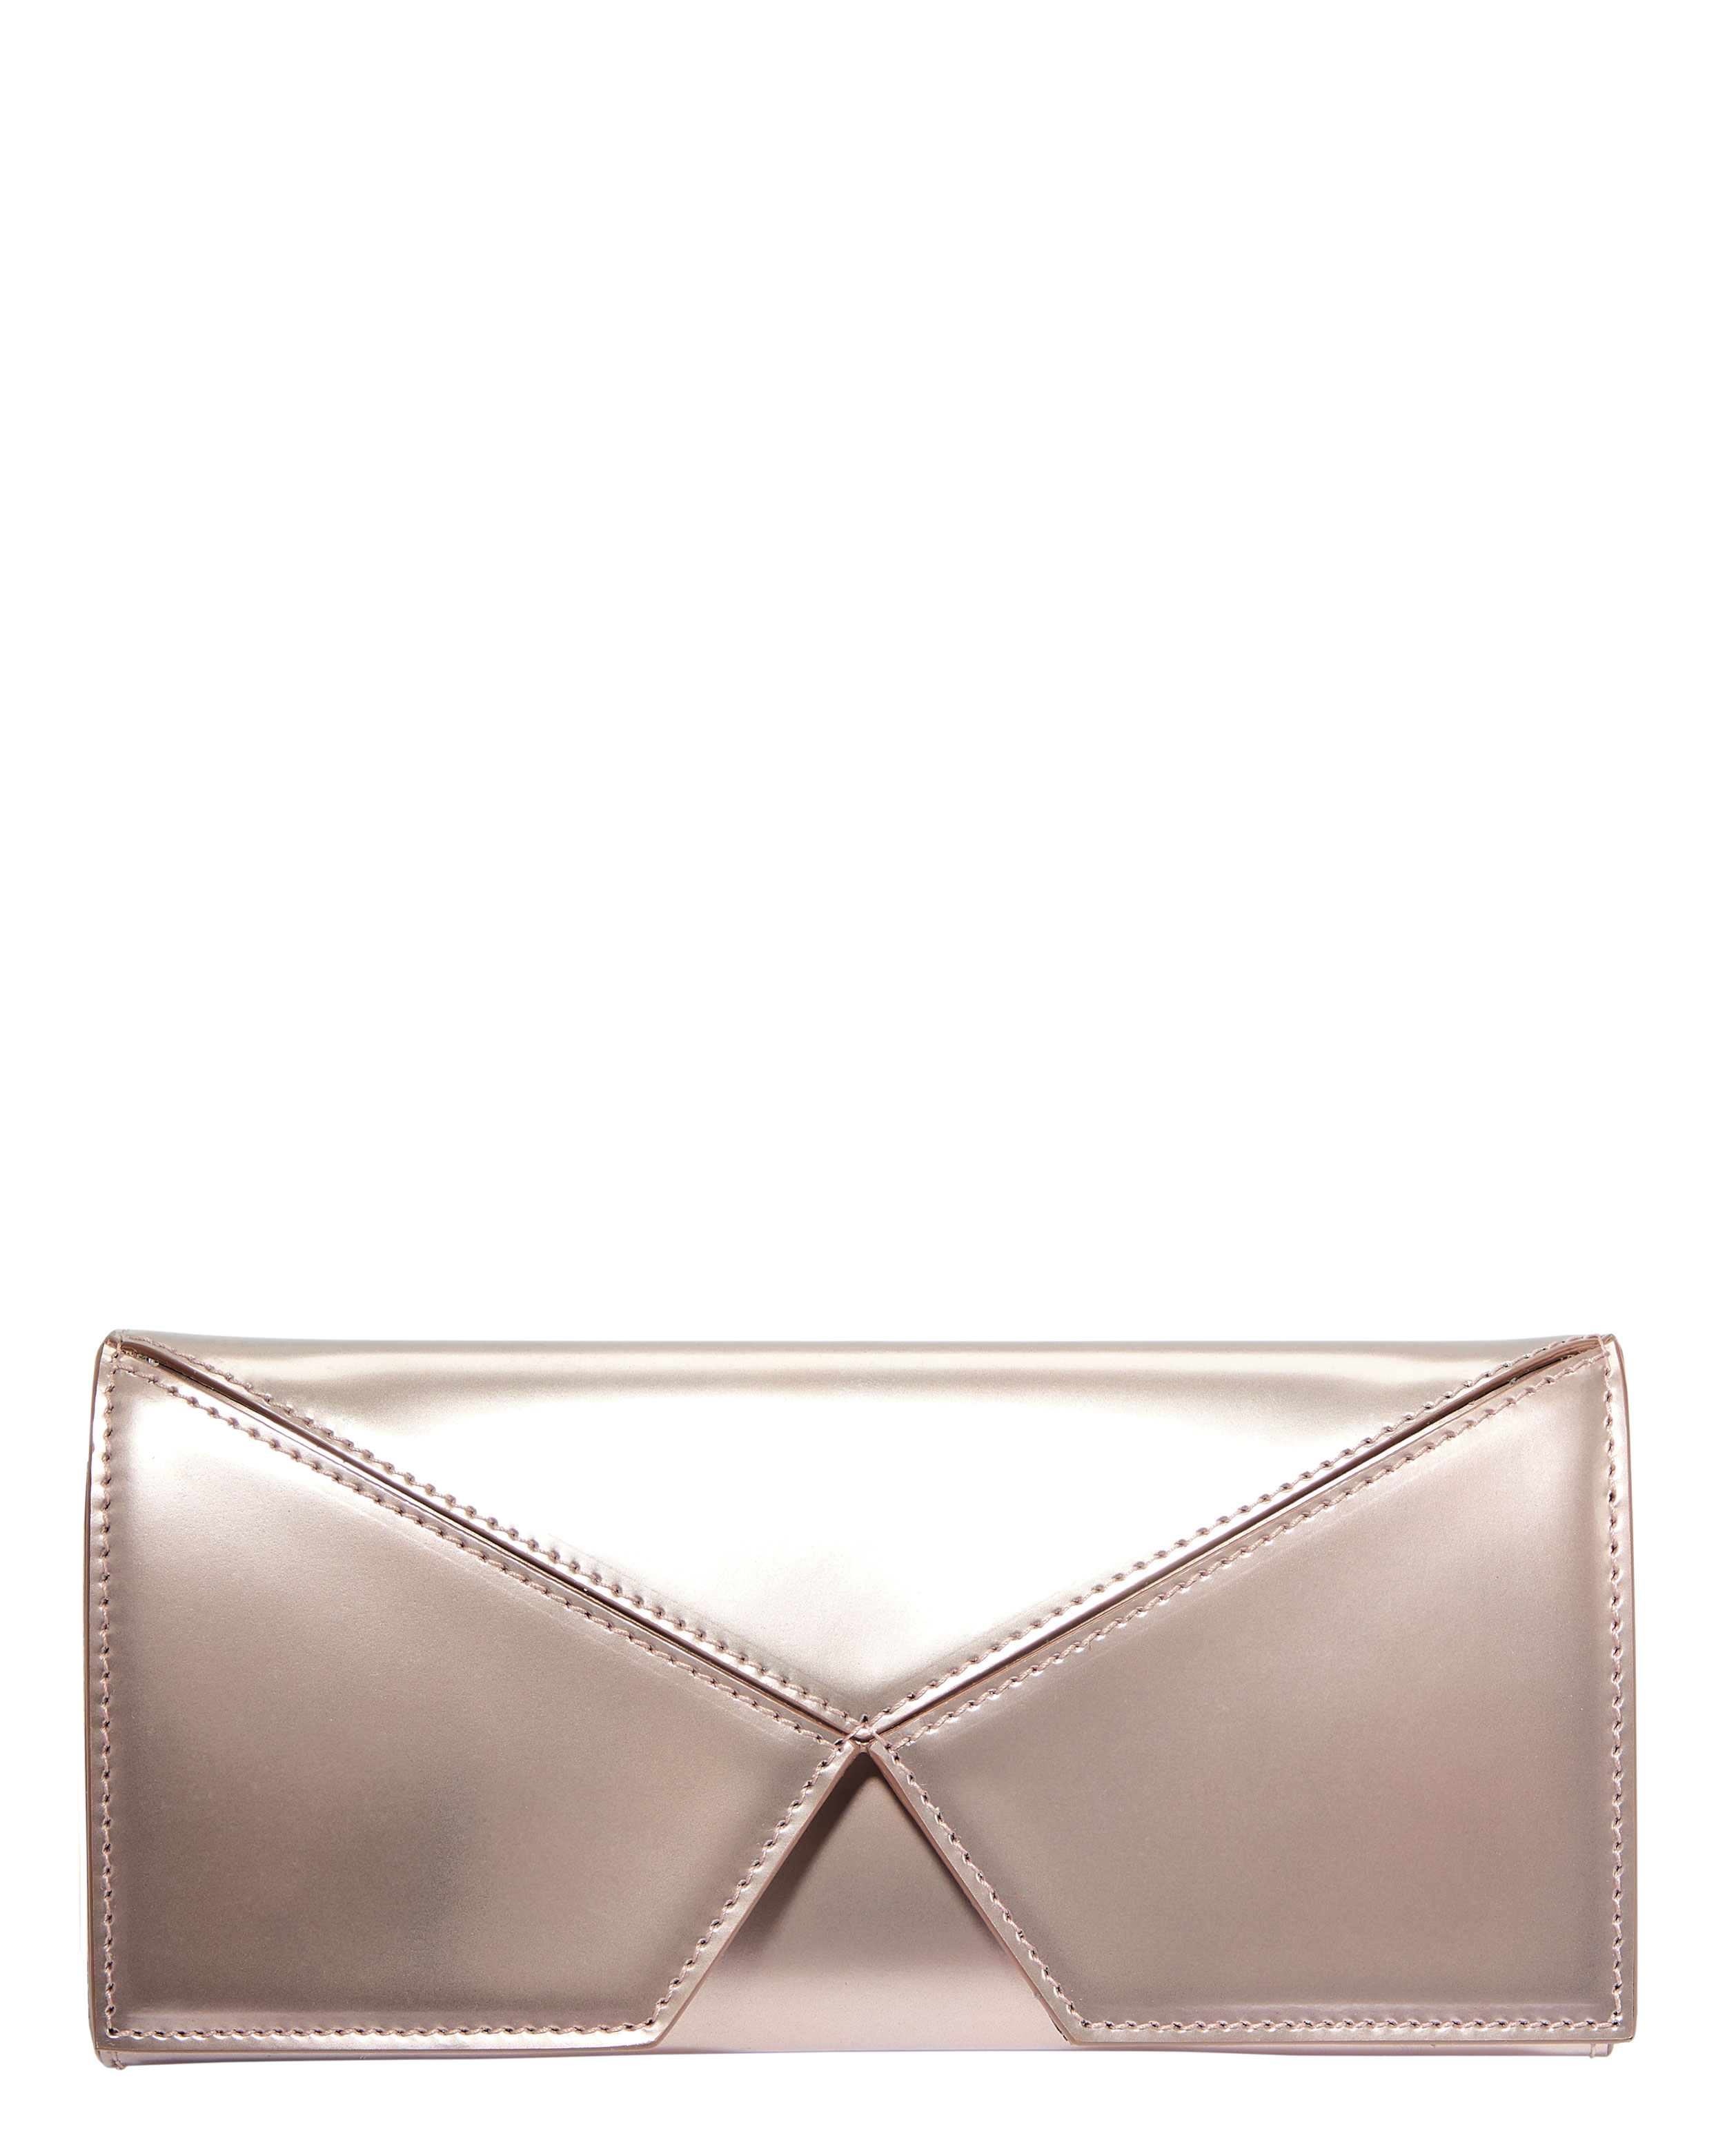 Jack Metallic Pink Clutch